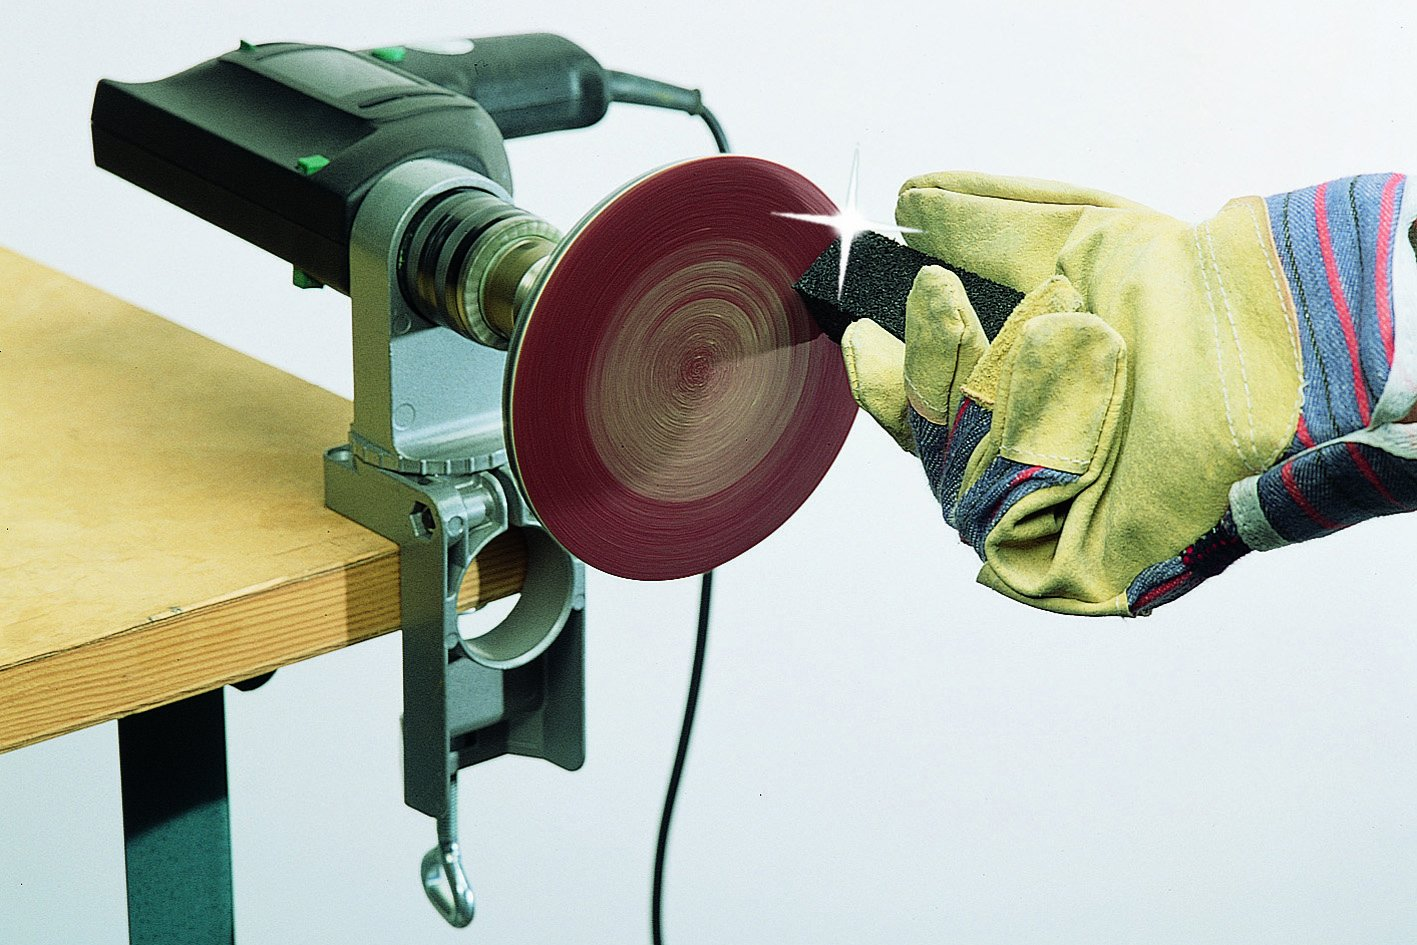 Wolfcraft B4800 Universel Perceuse Clamp